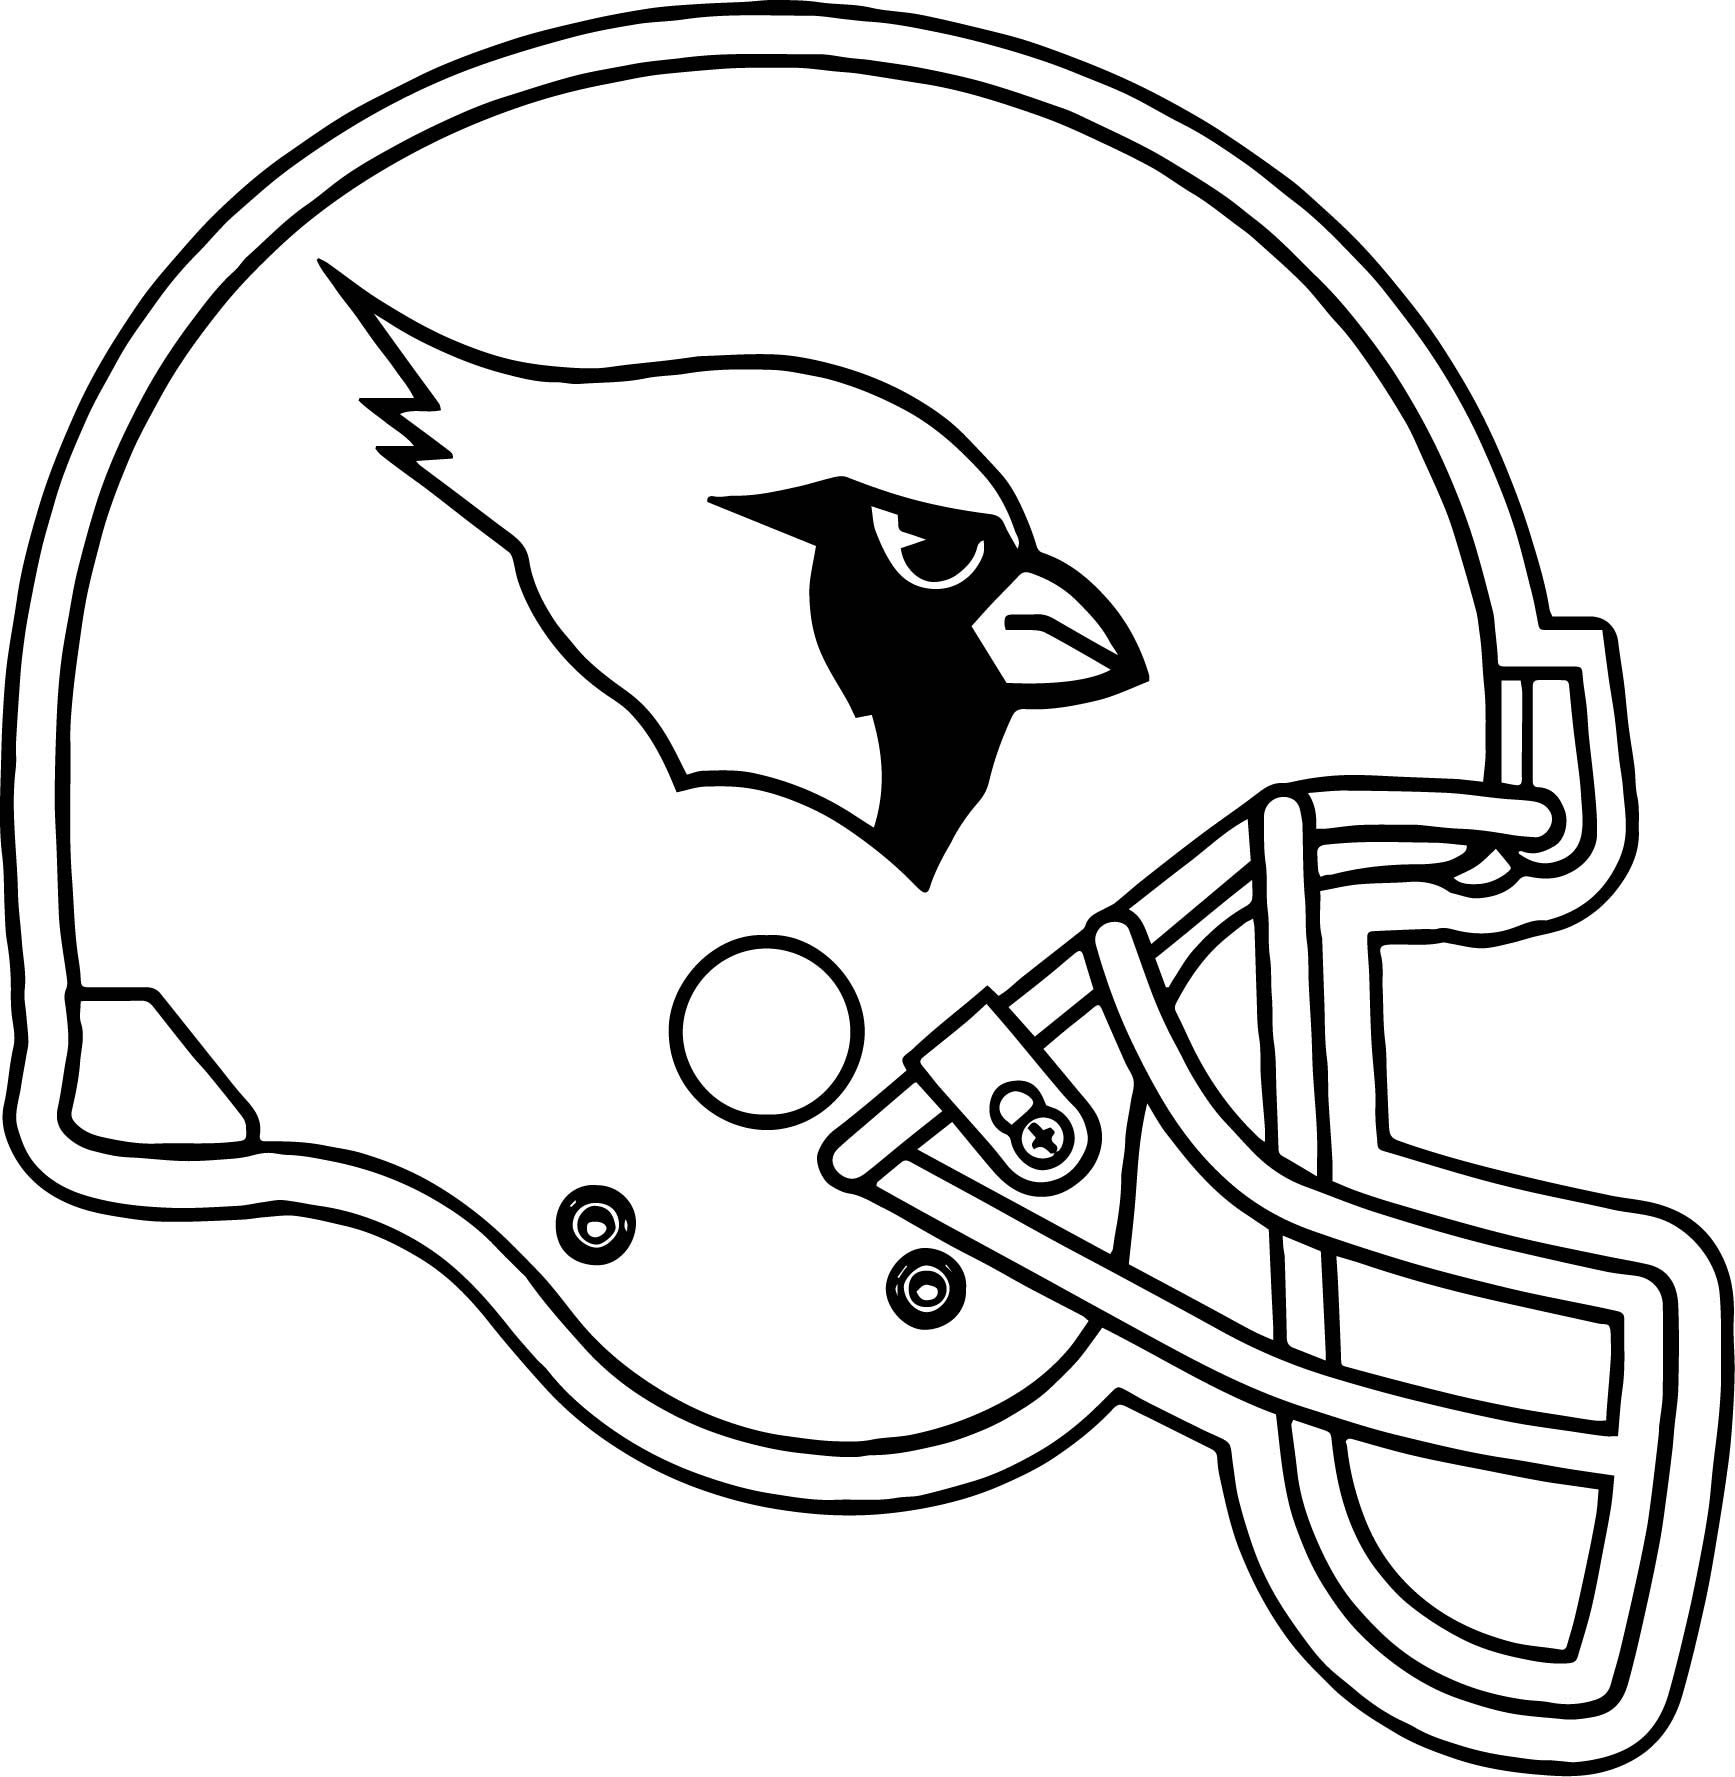 Arizona Cardinals Coloring Pages Printable 4s - Free For Children